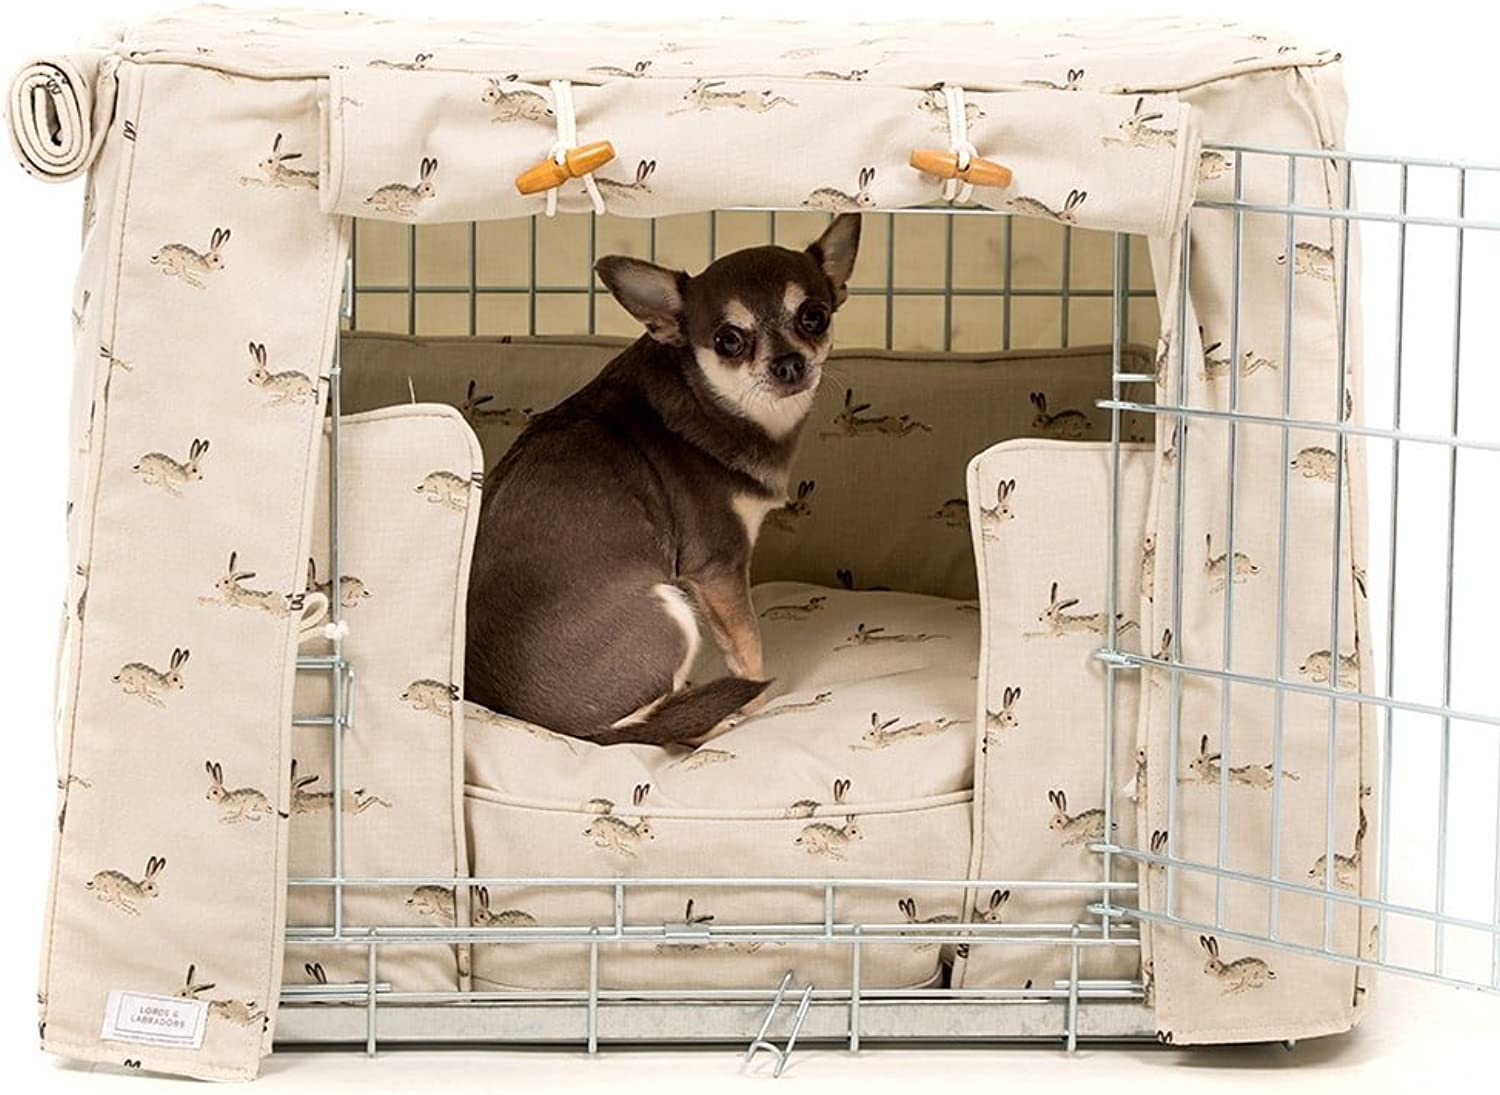 Lords & Labradors Crate Cover Set in Sophie Allport Hare Designer Fabric with EllieBo Crate (Includes a dog crate, crate cover and cushion) (Medium 30 , Silver)